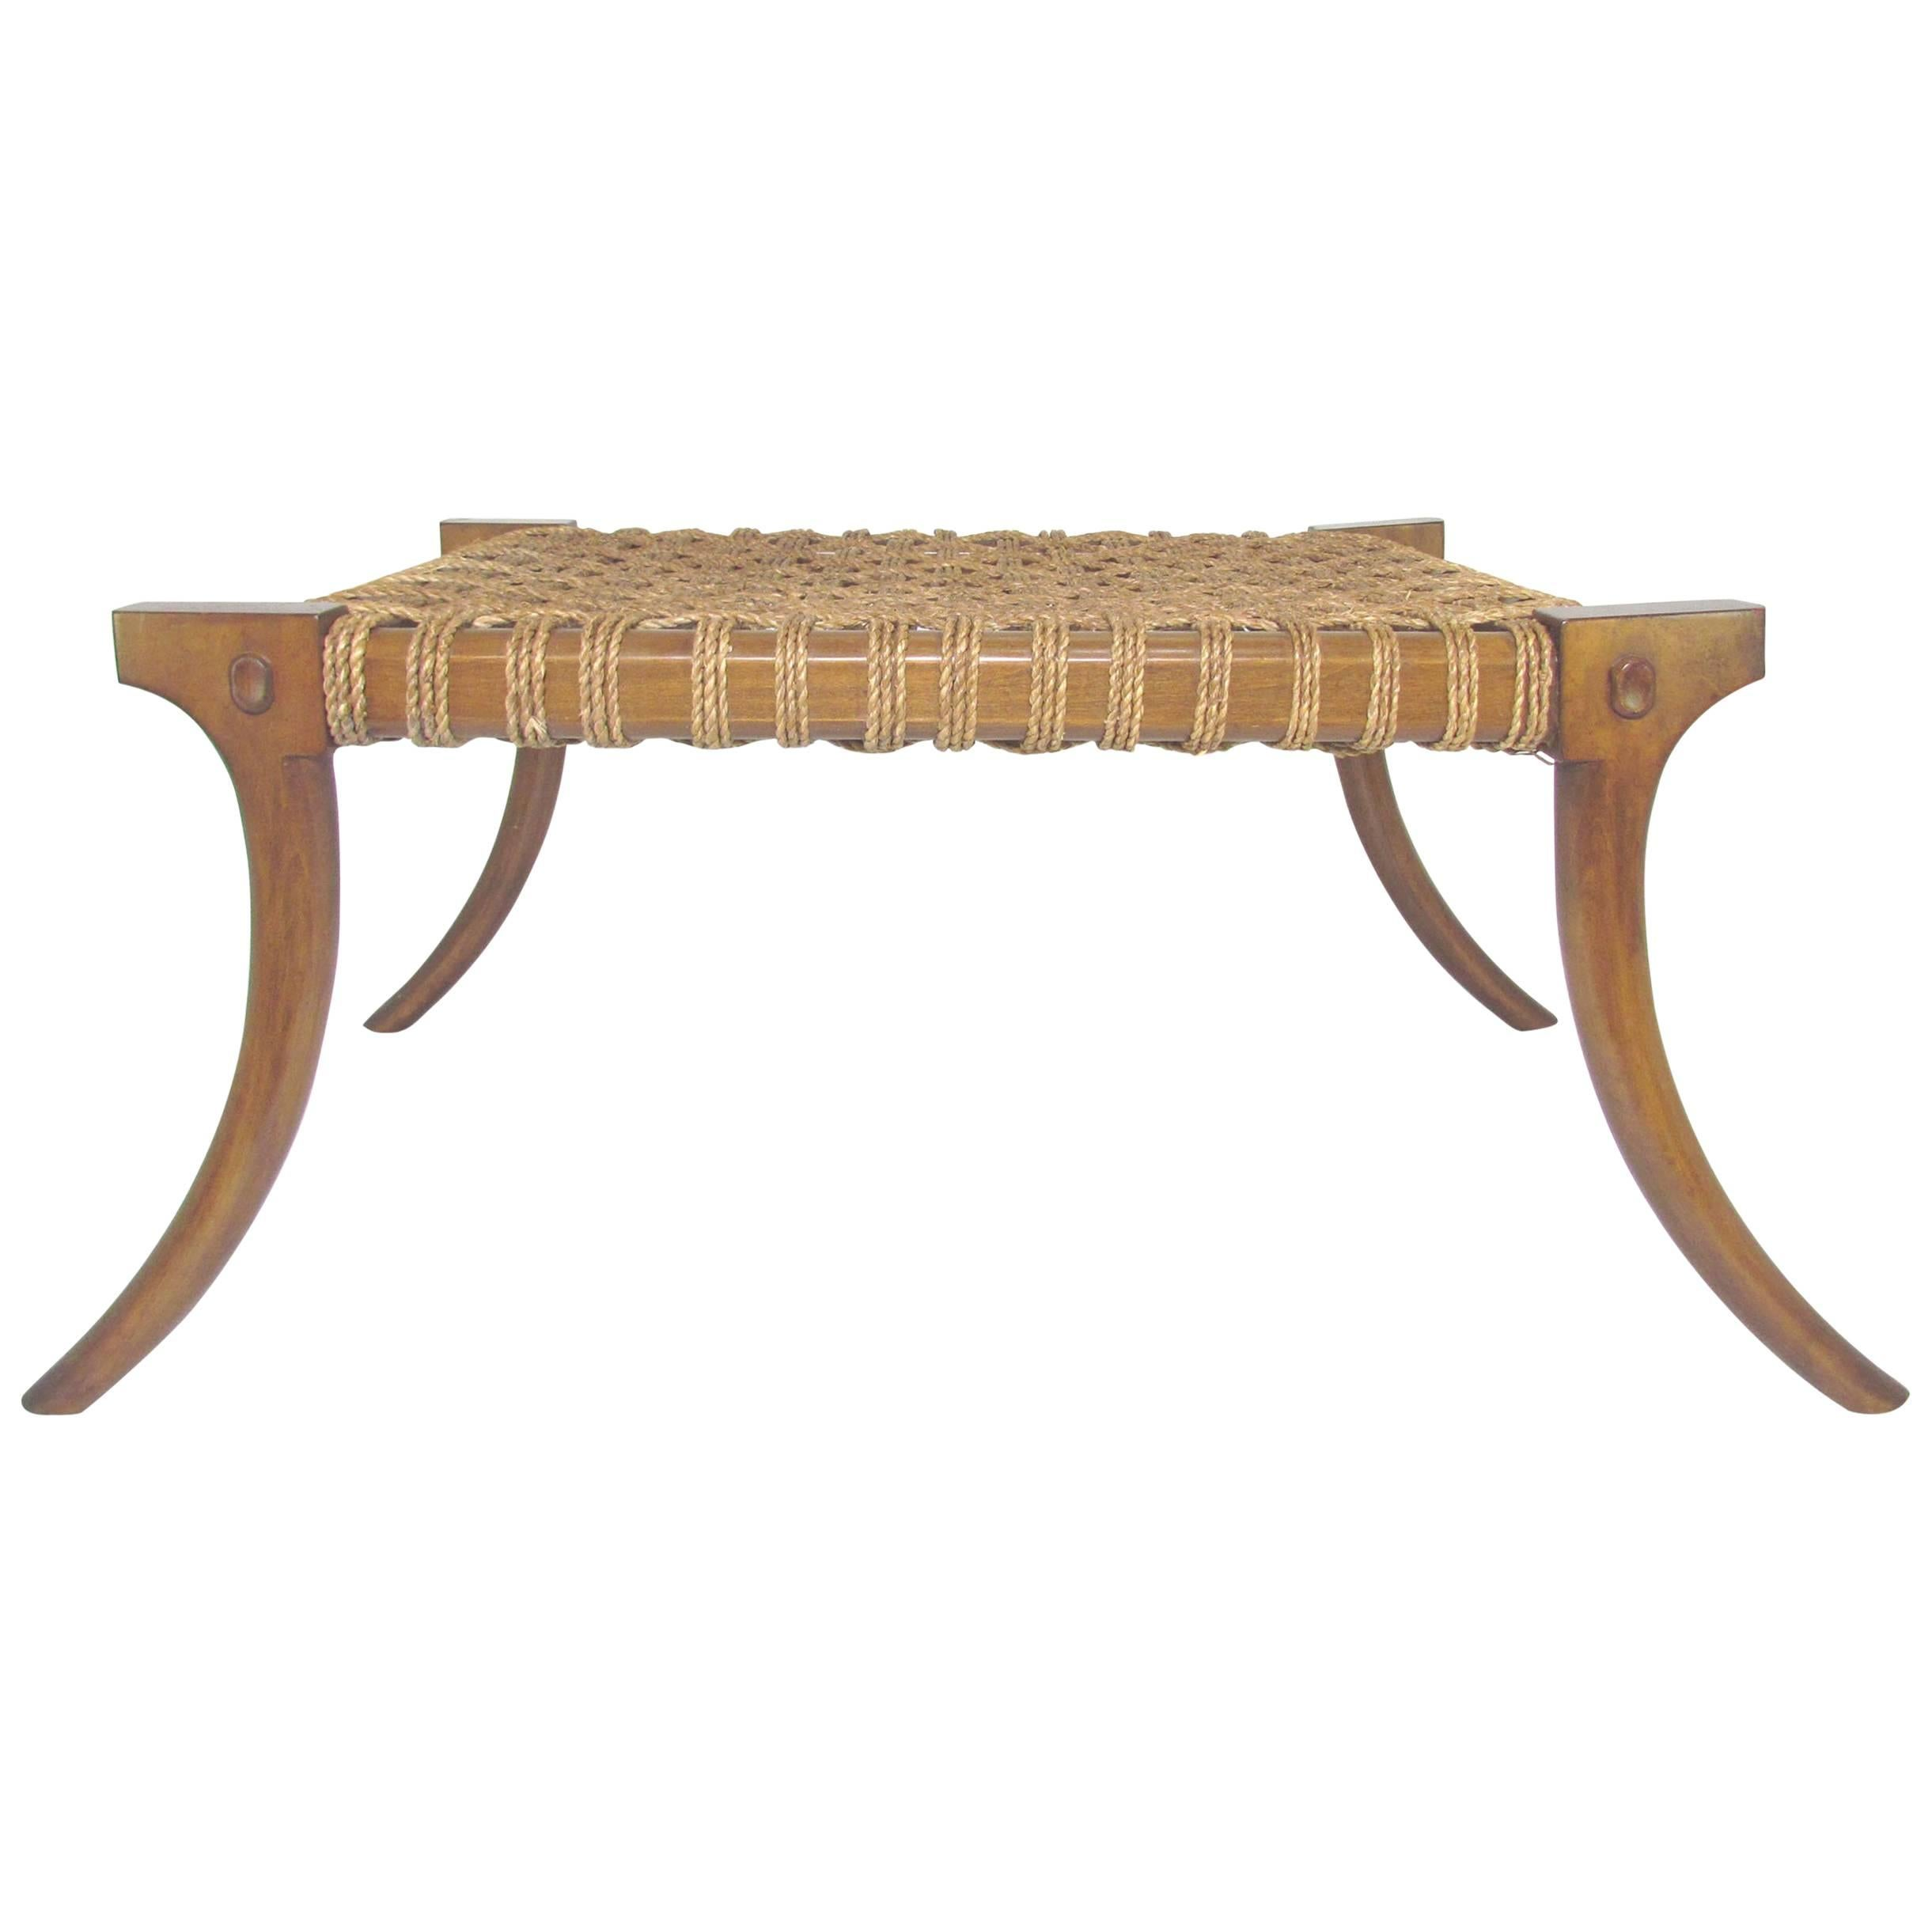 Klismos Bench Or Coffee Table With Rope Seat, Circa 1960s 1